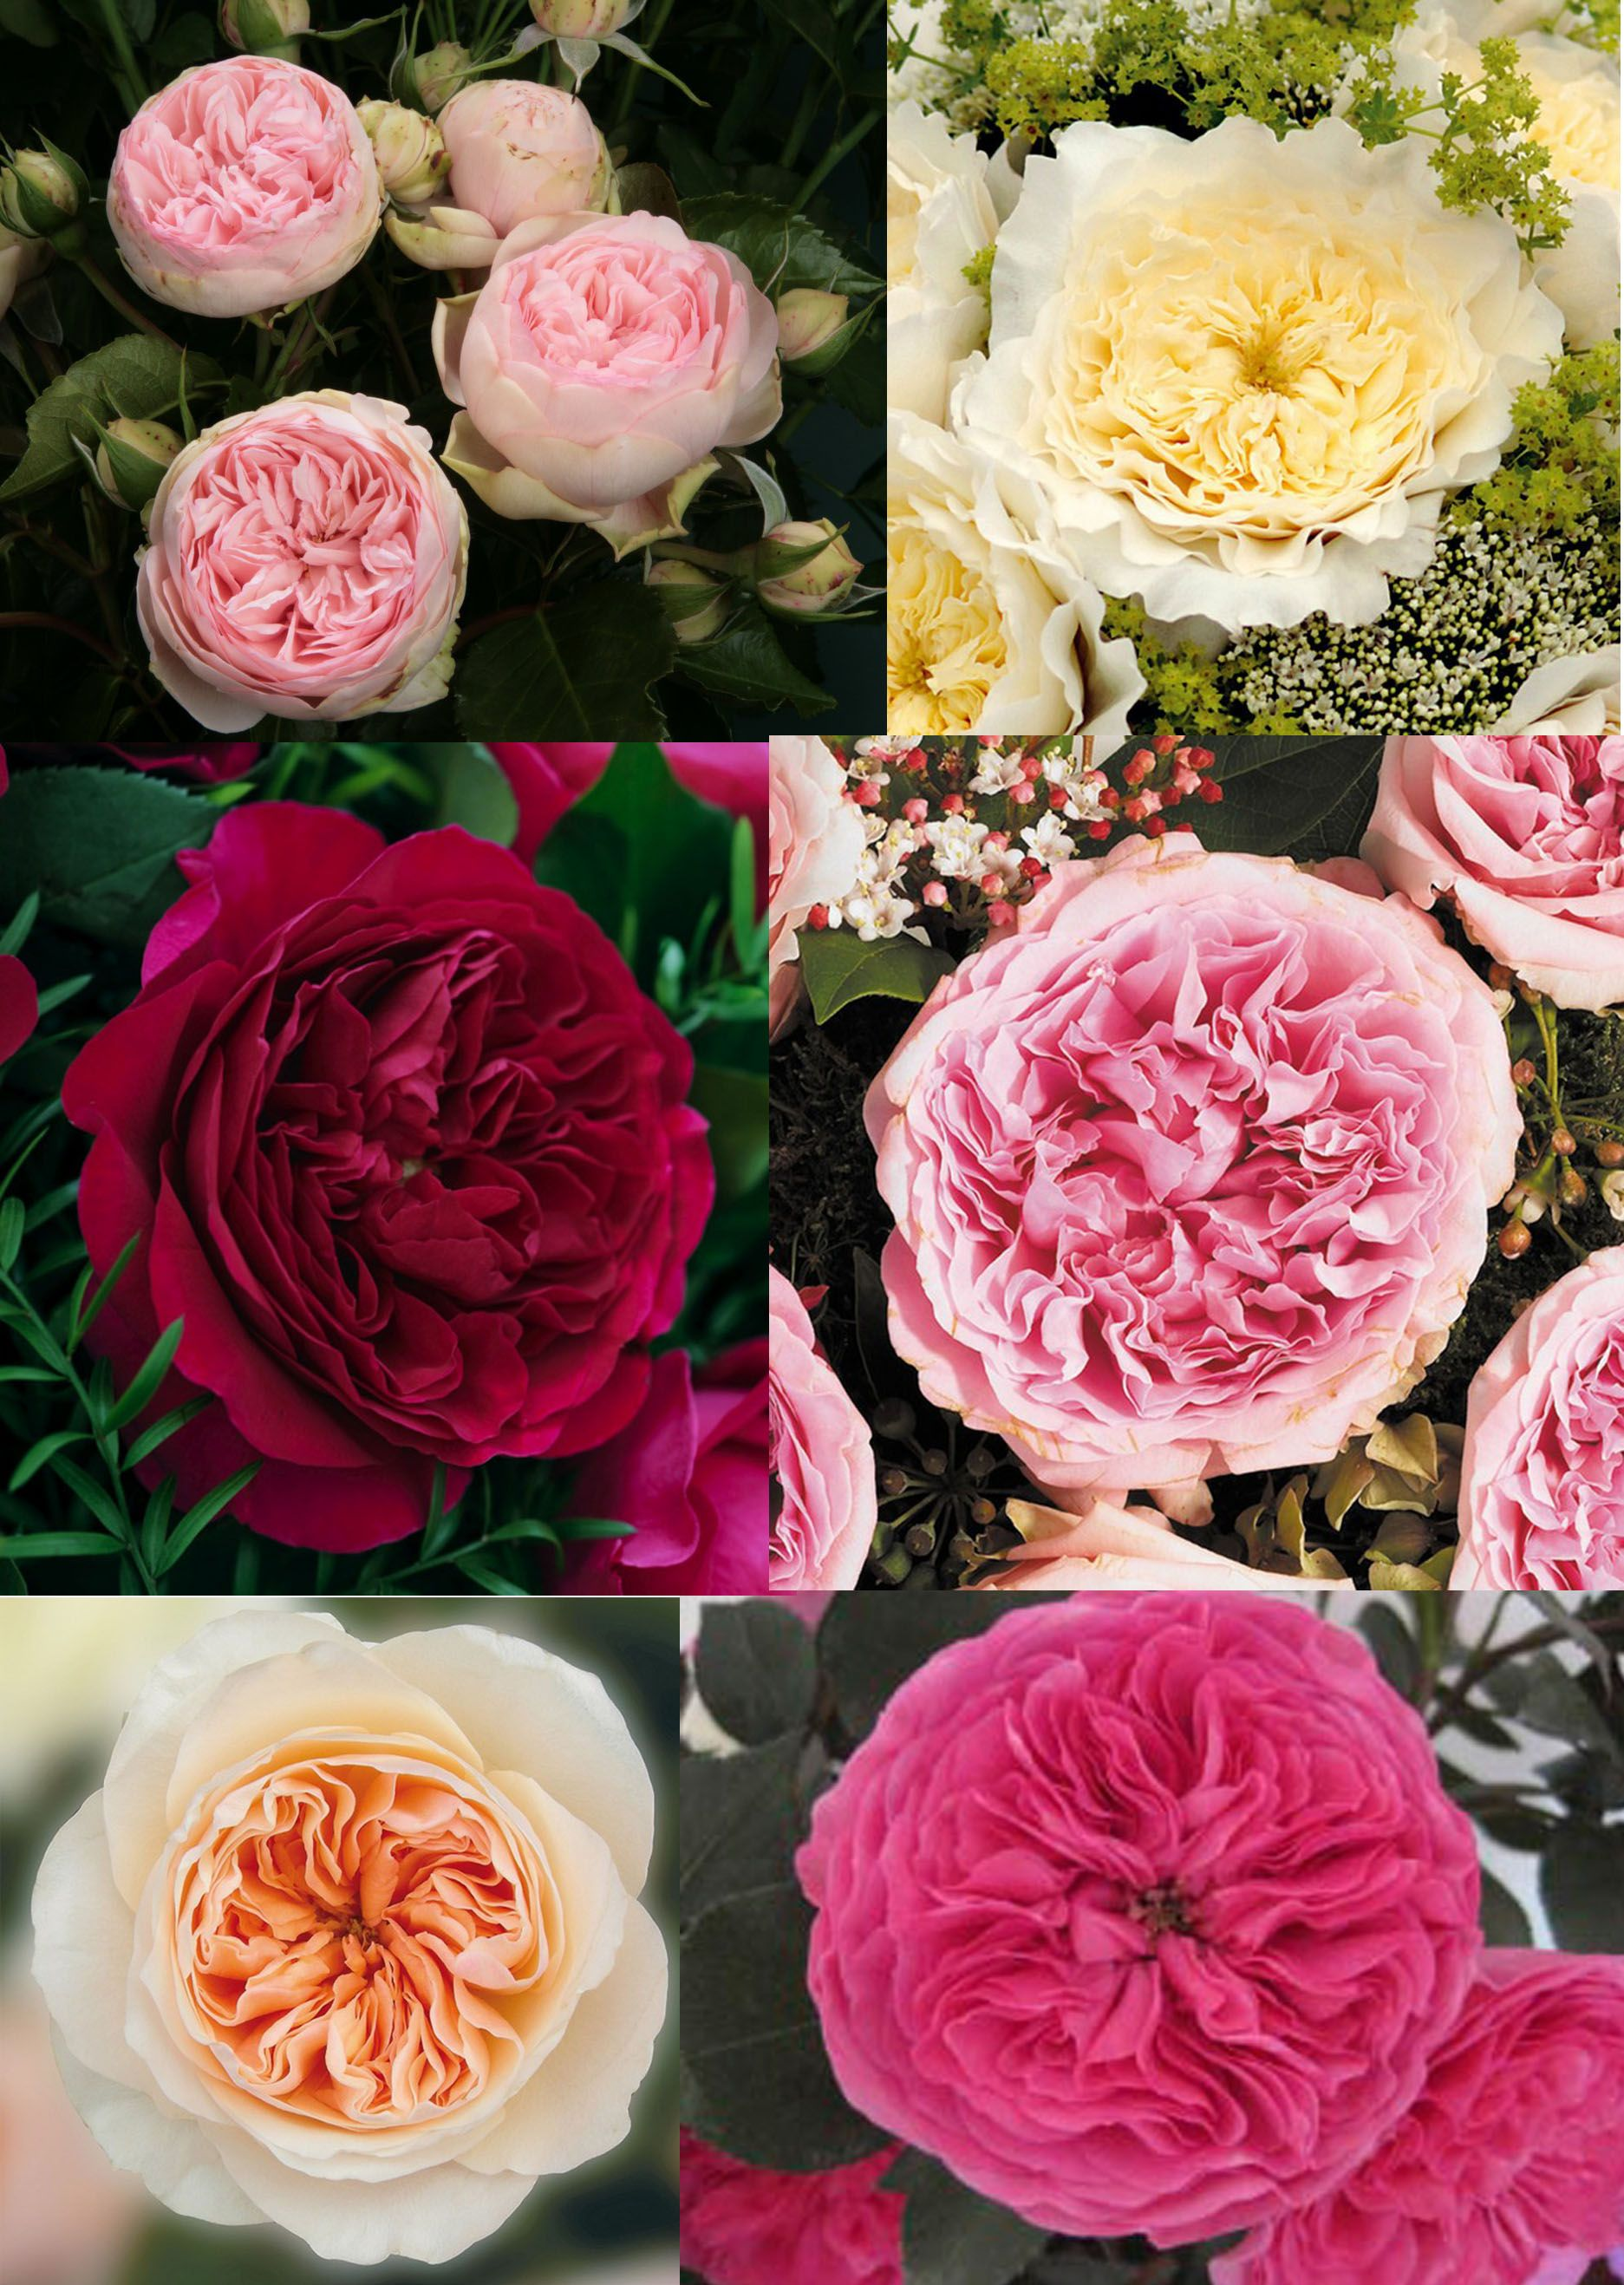 Baronesse garden rose google search cabbage rose pinterest gardens search and roses - Rose cultivars garden ...